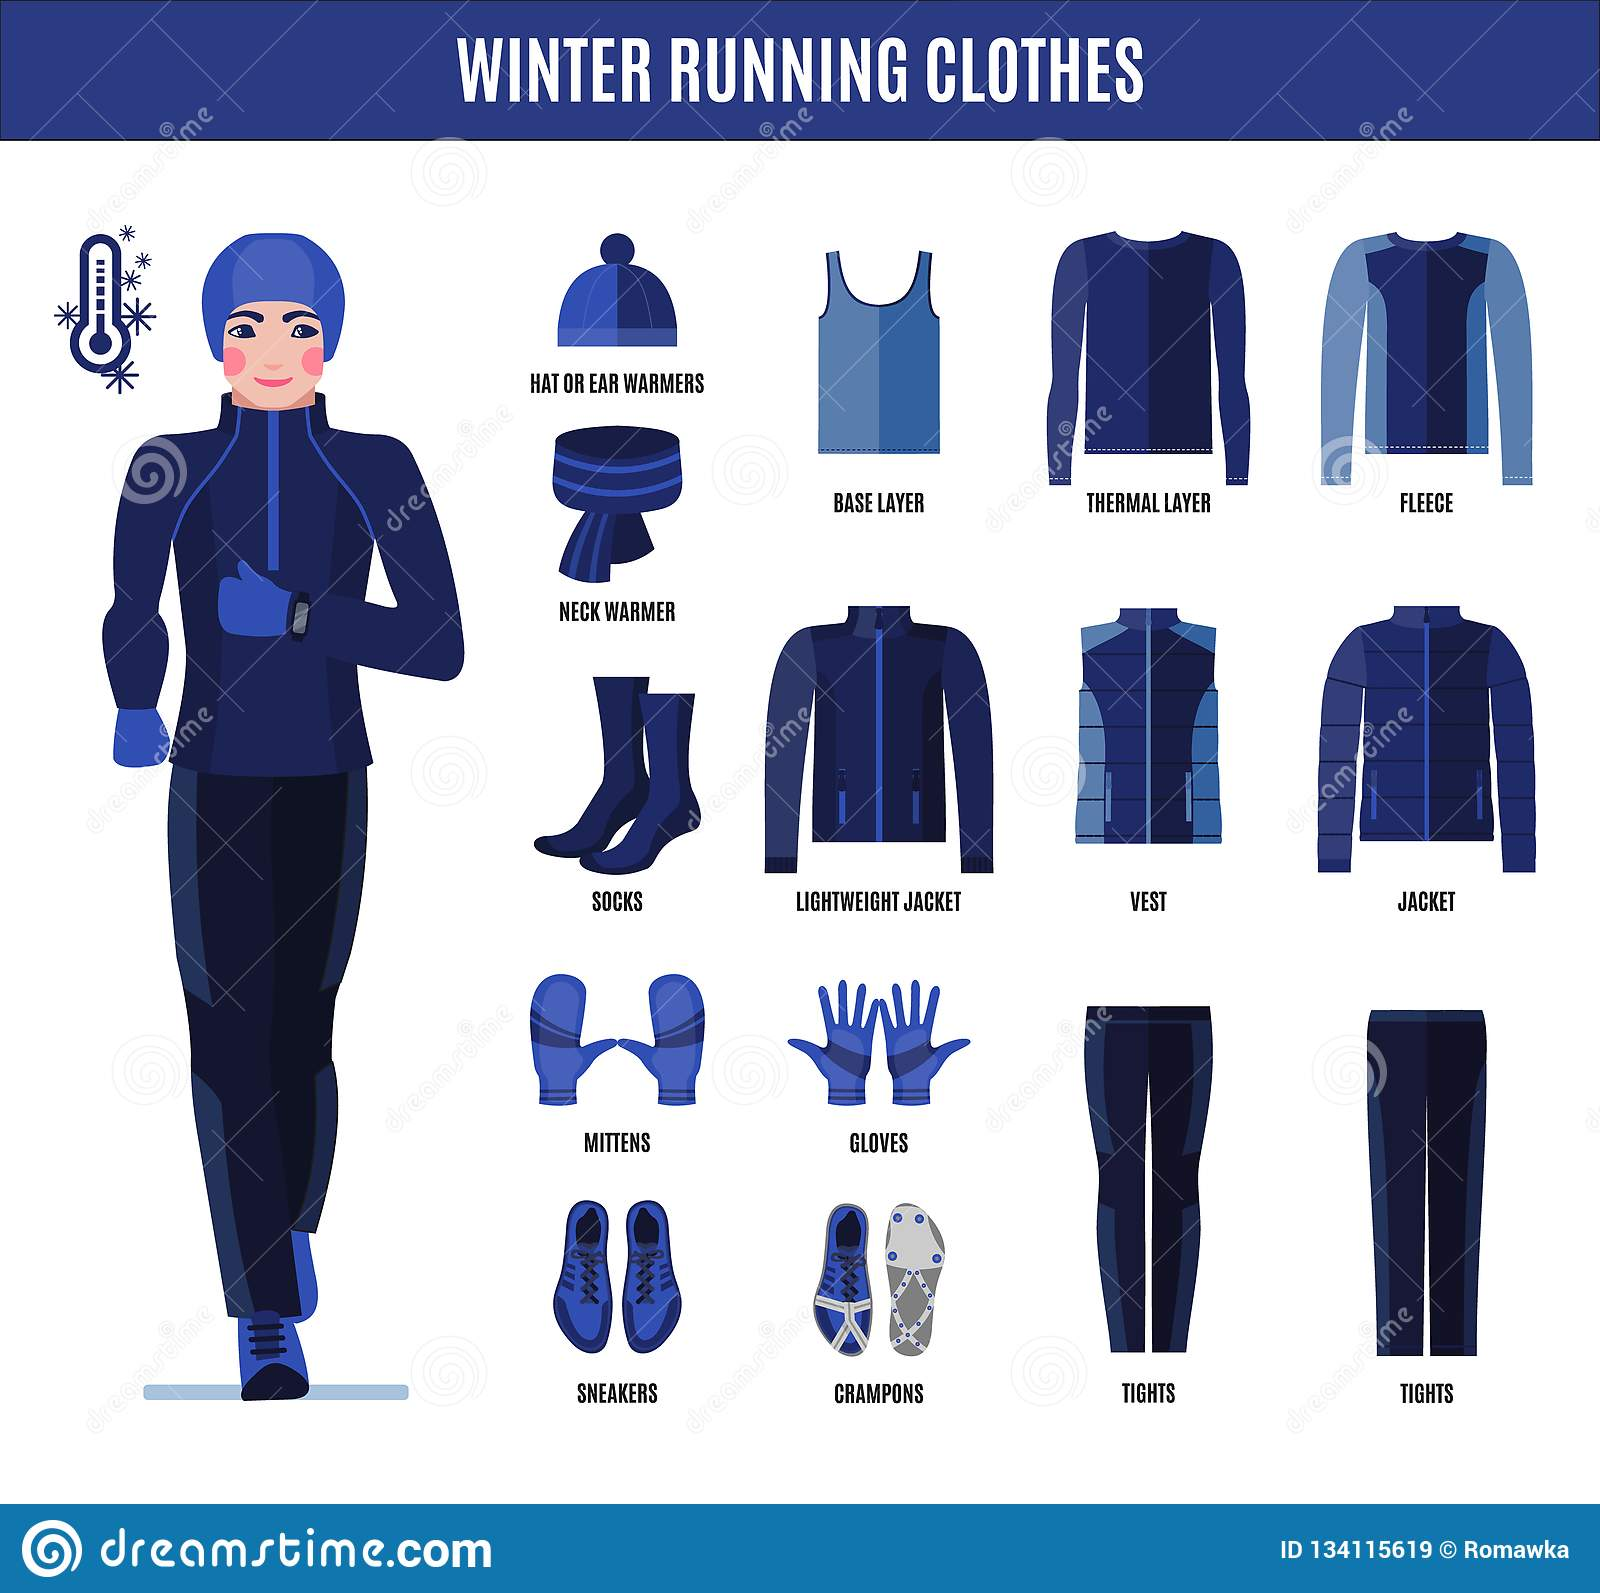 3c31af81aa9c Winter Running Clothes Set For Man In Flat Style Stock Vector ...